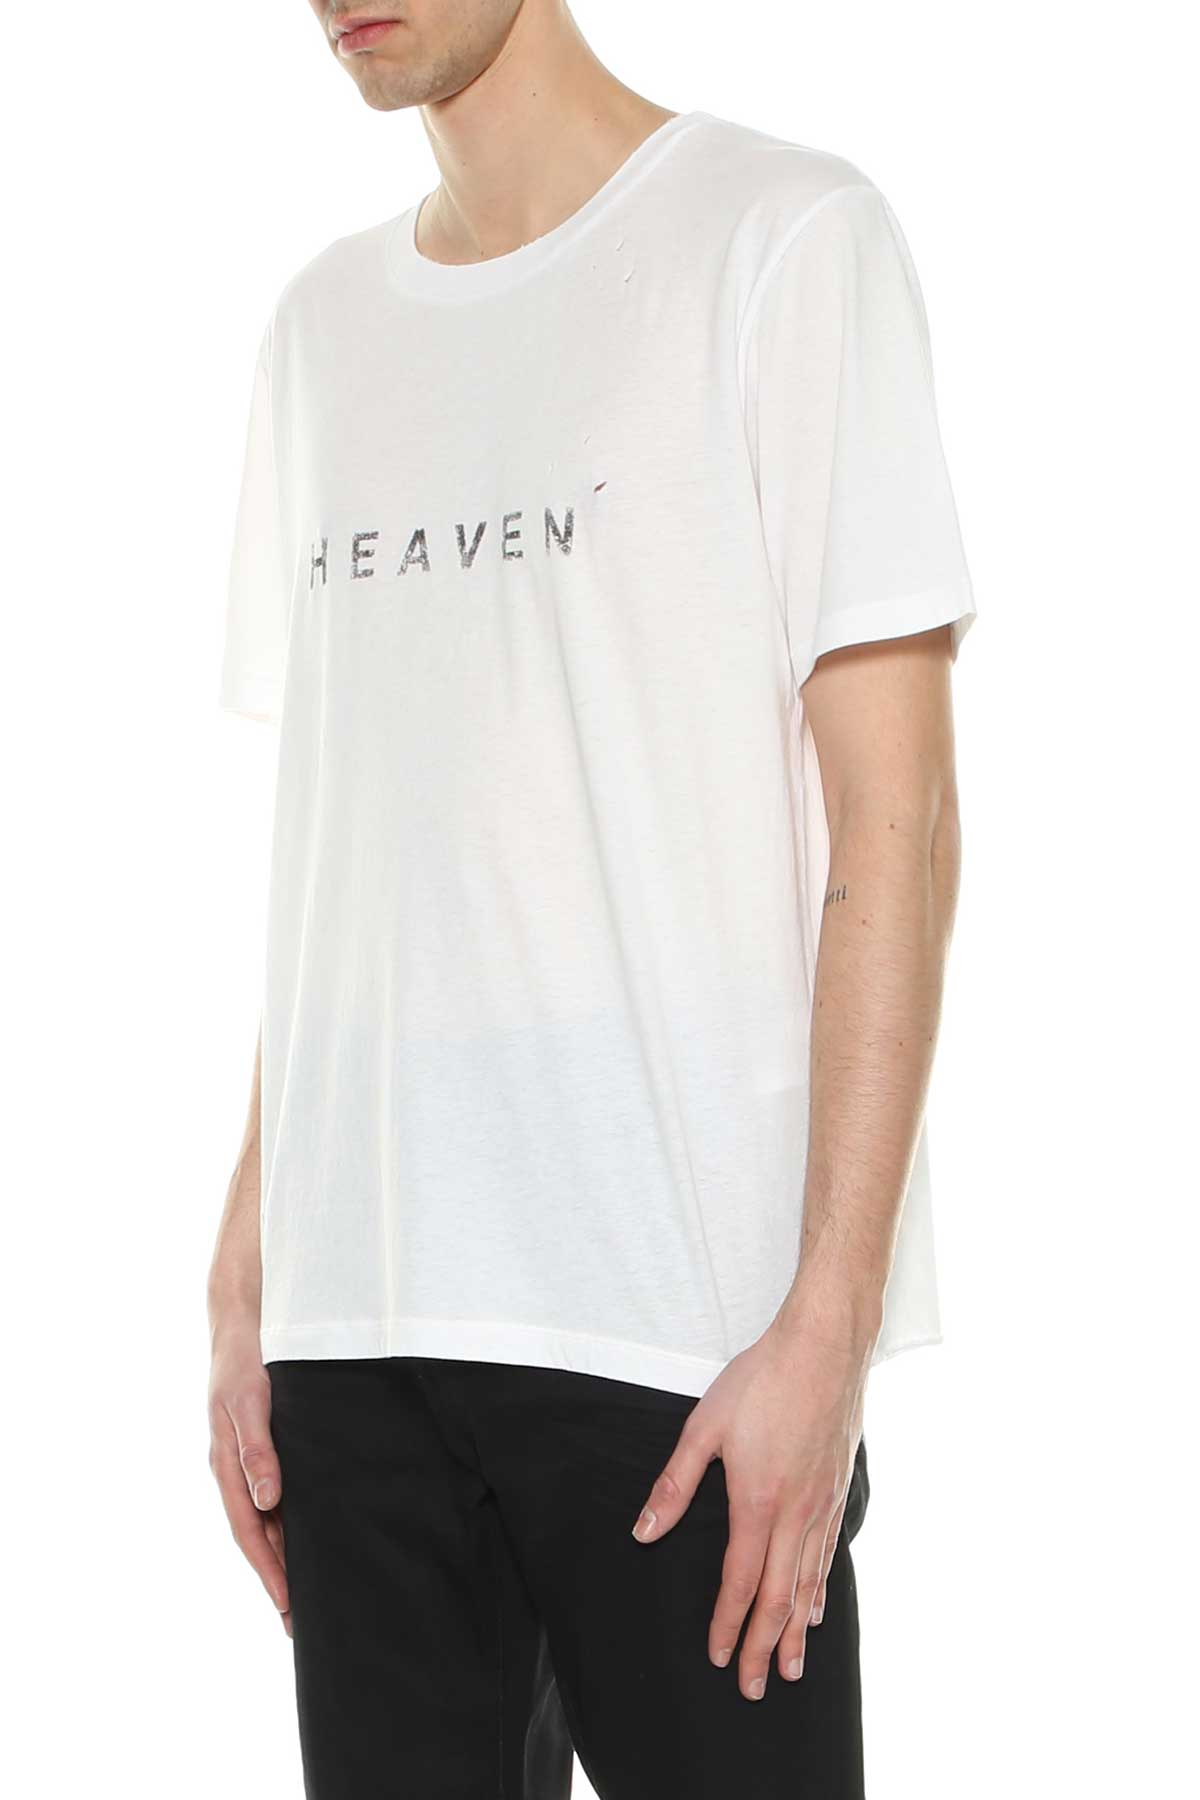 Cheap Browse TOPWEAR - T-shirts made in heaven Many Kinds Of Cheap Online Free Shipping Affordable Up To Date Best Sale egiOJ17